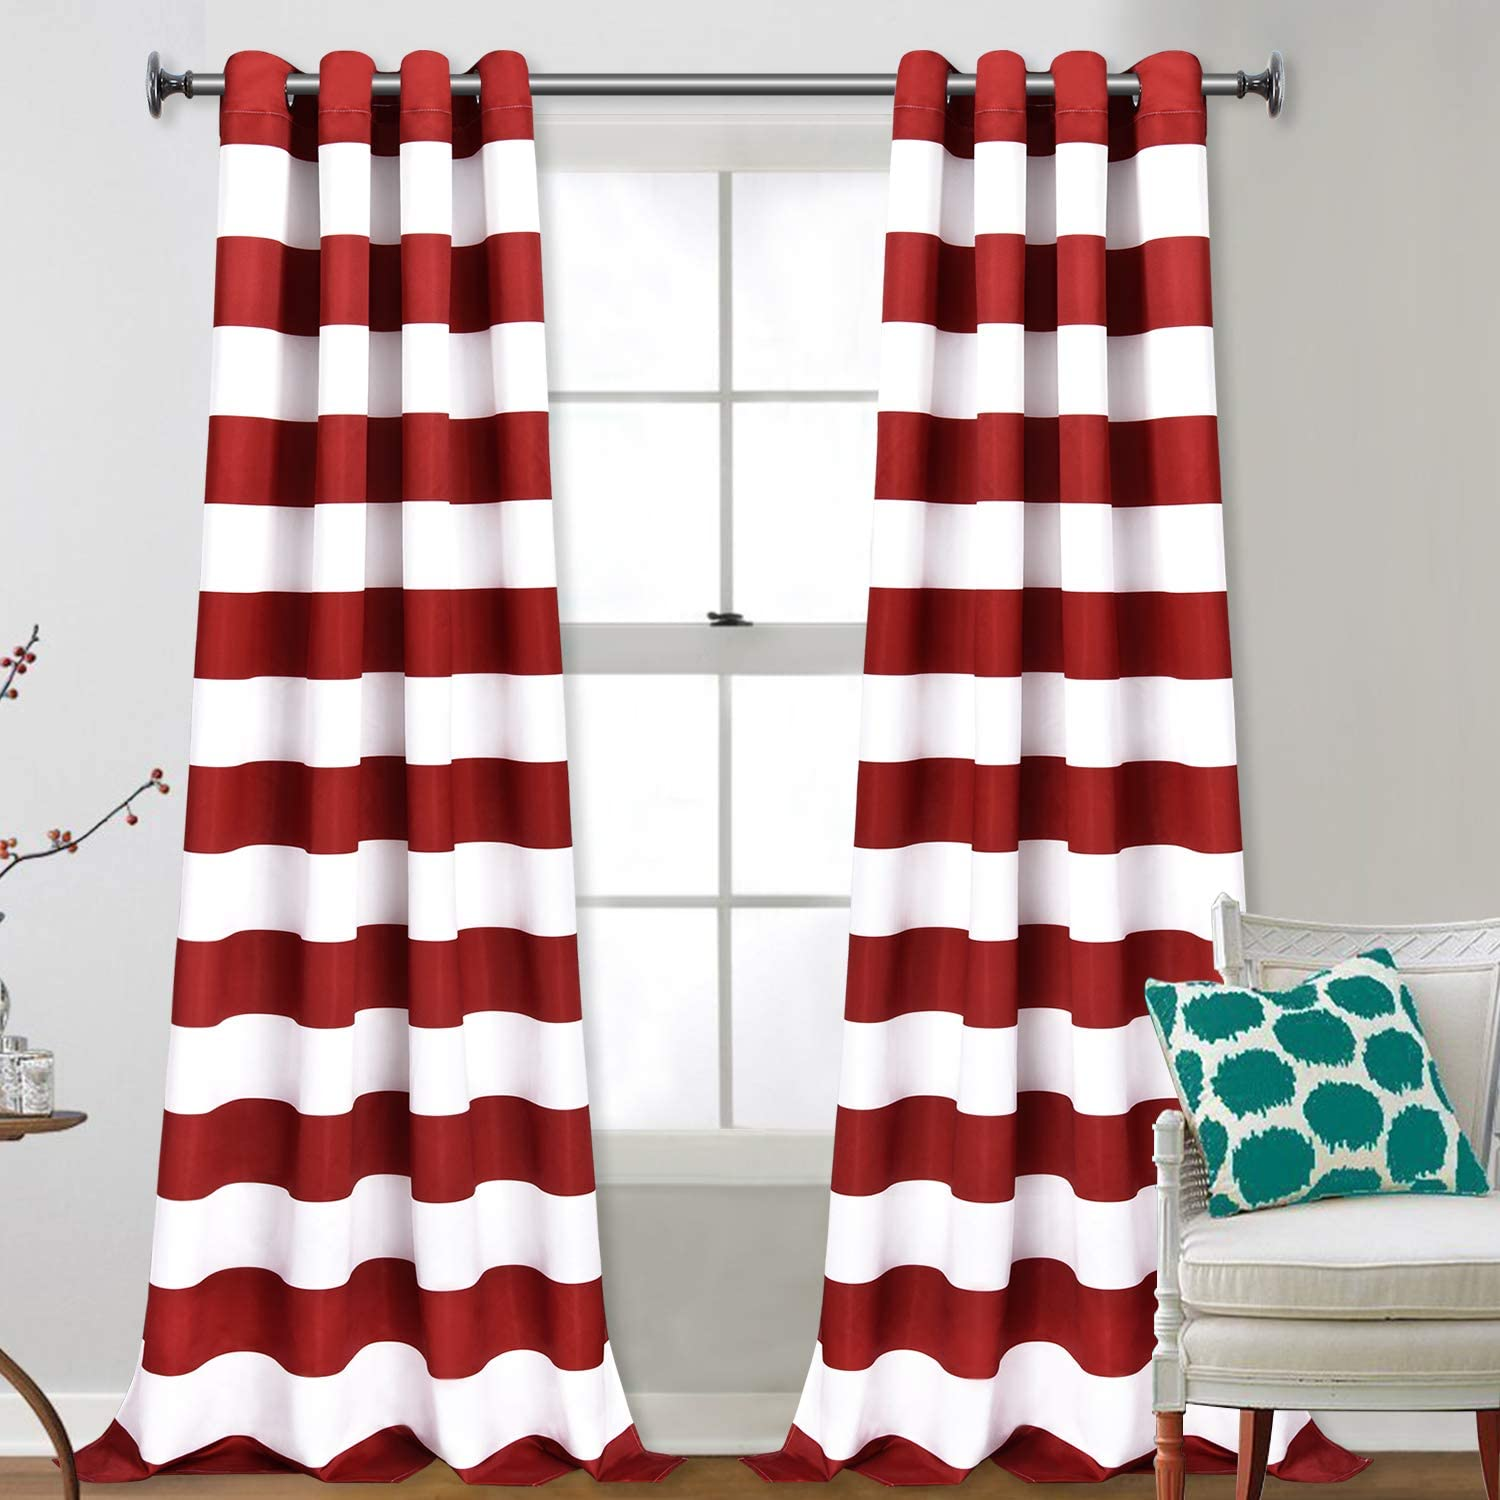 VERTKREA Stripe Window Curtain Striped Room Window Treatment Grommet Curtains 52 × 84 Inches Stripes Drapes for Bedroom Living Room, Red, Set of 2 Panels